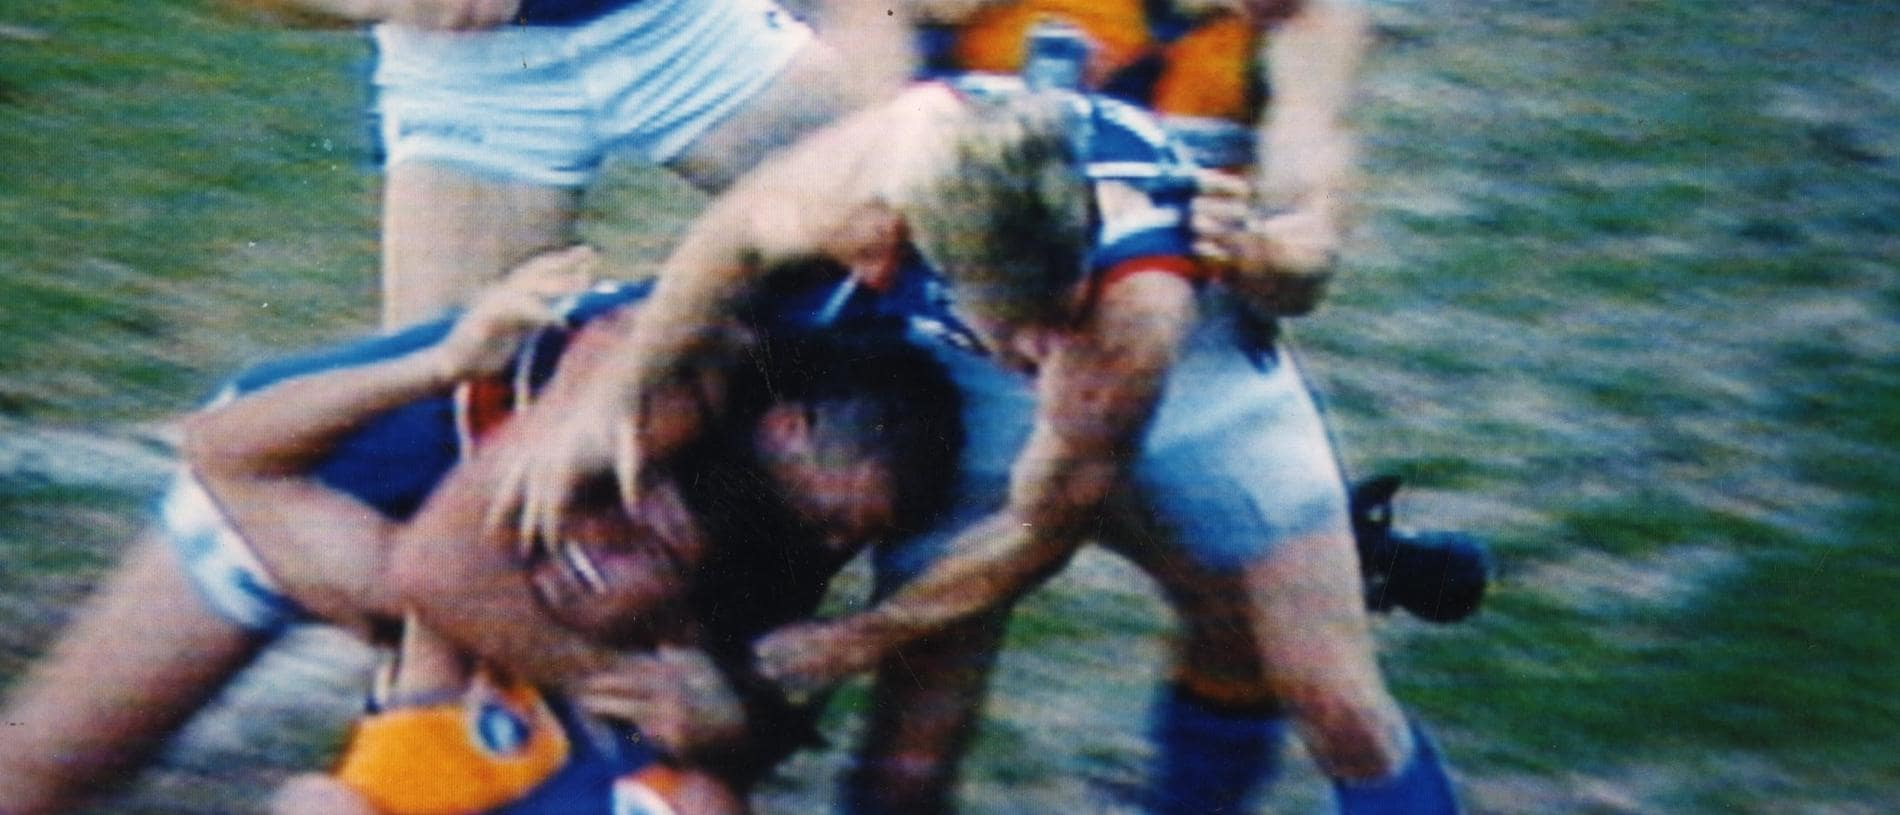 Footballer Danny Southern (bottom l) gets Peter Sumich in headlock during all-in brawl. AFL football - Footscray vs West Coast Eagles match at Subiaco 04 Sep 1994. (Pic: Coutesy Channel Seven)